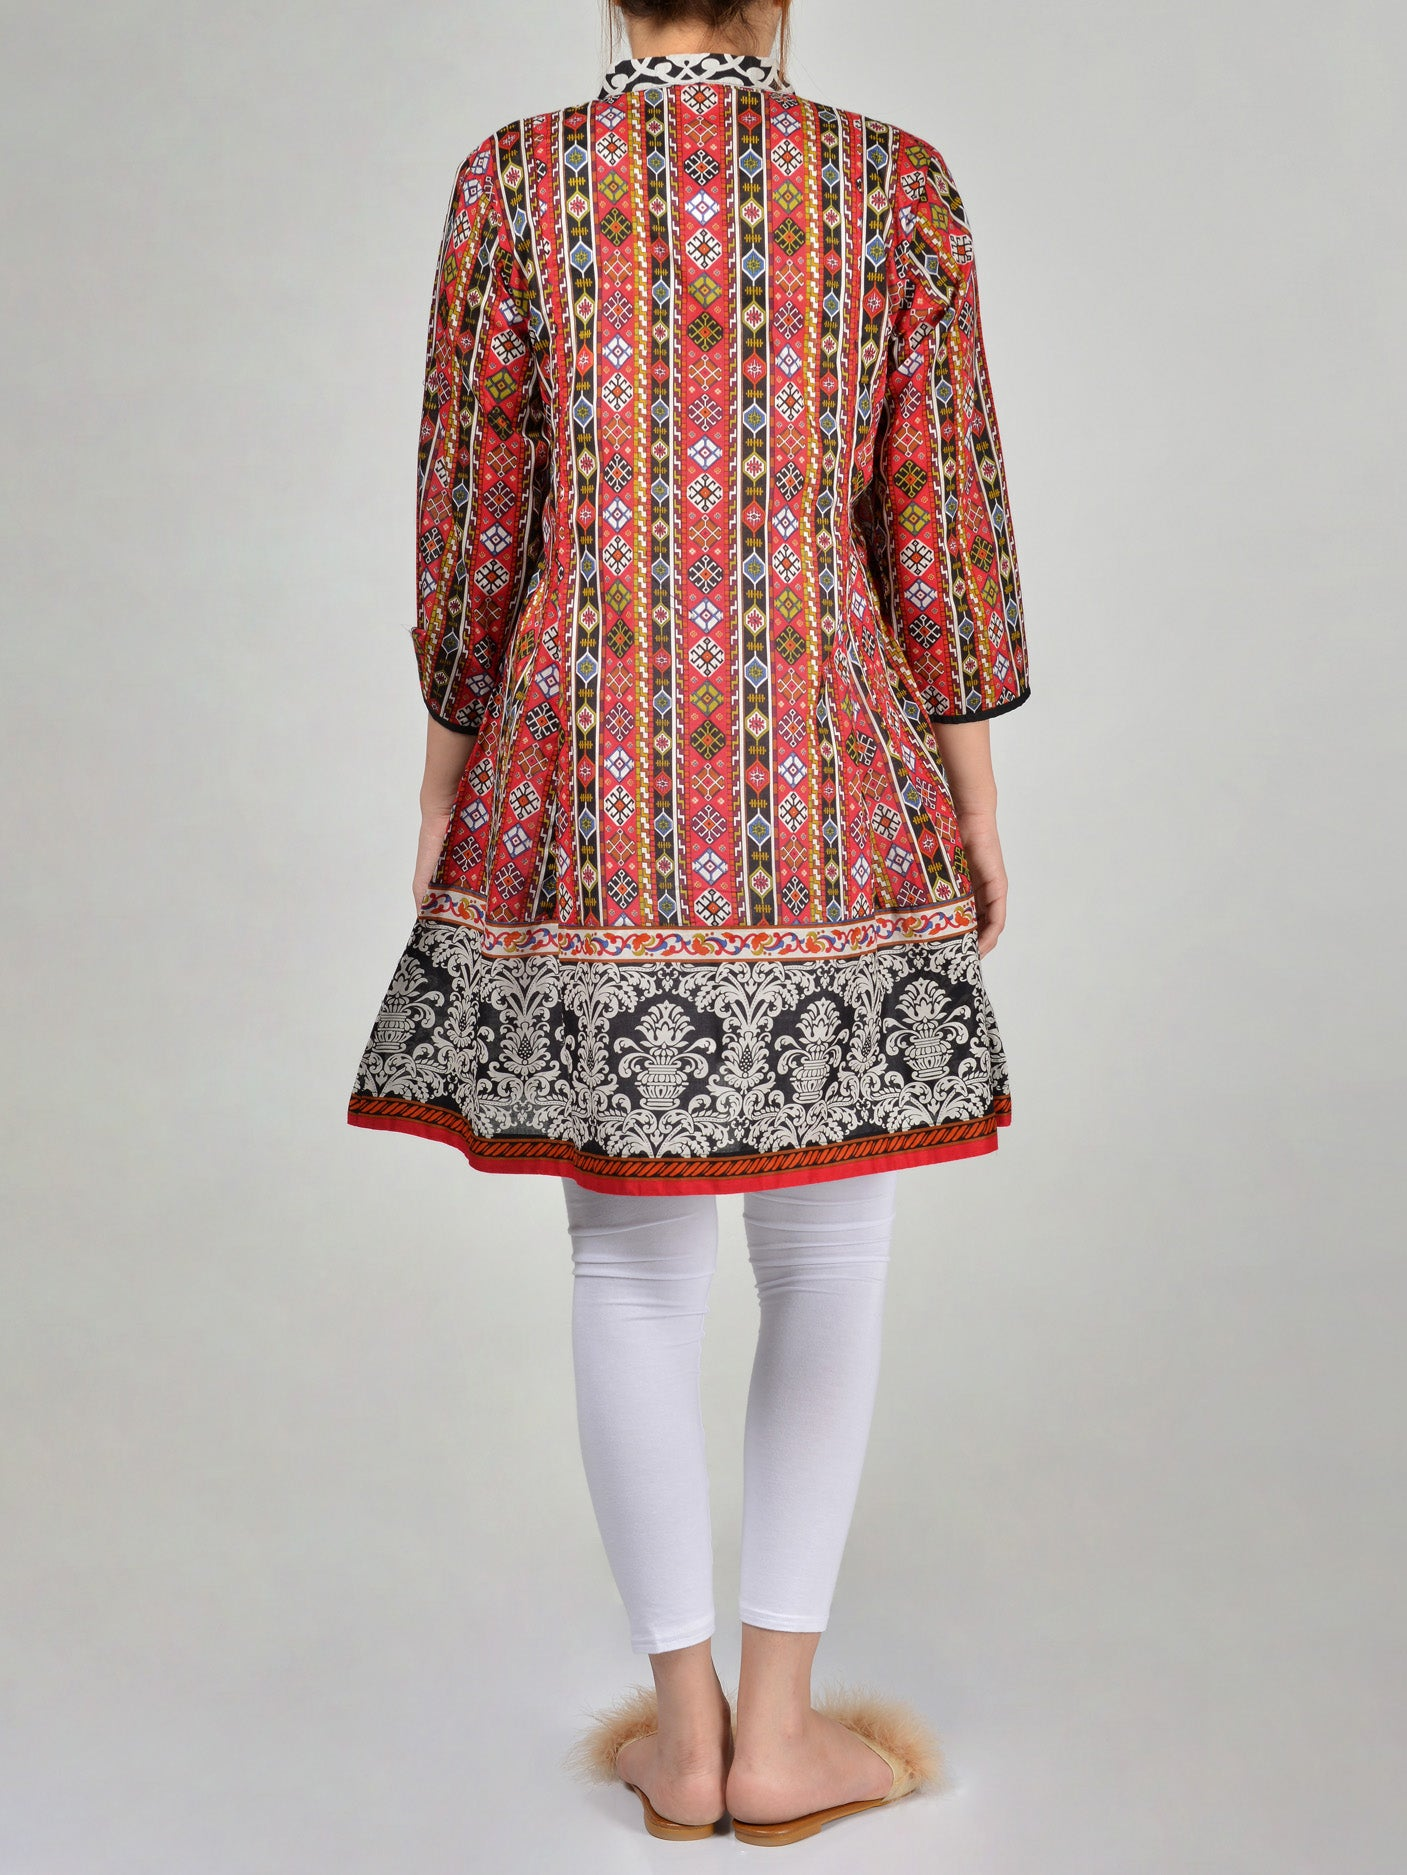 Printed Lawn Frock P0160 by limelight Online in Pakistan | Limelight.pk